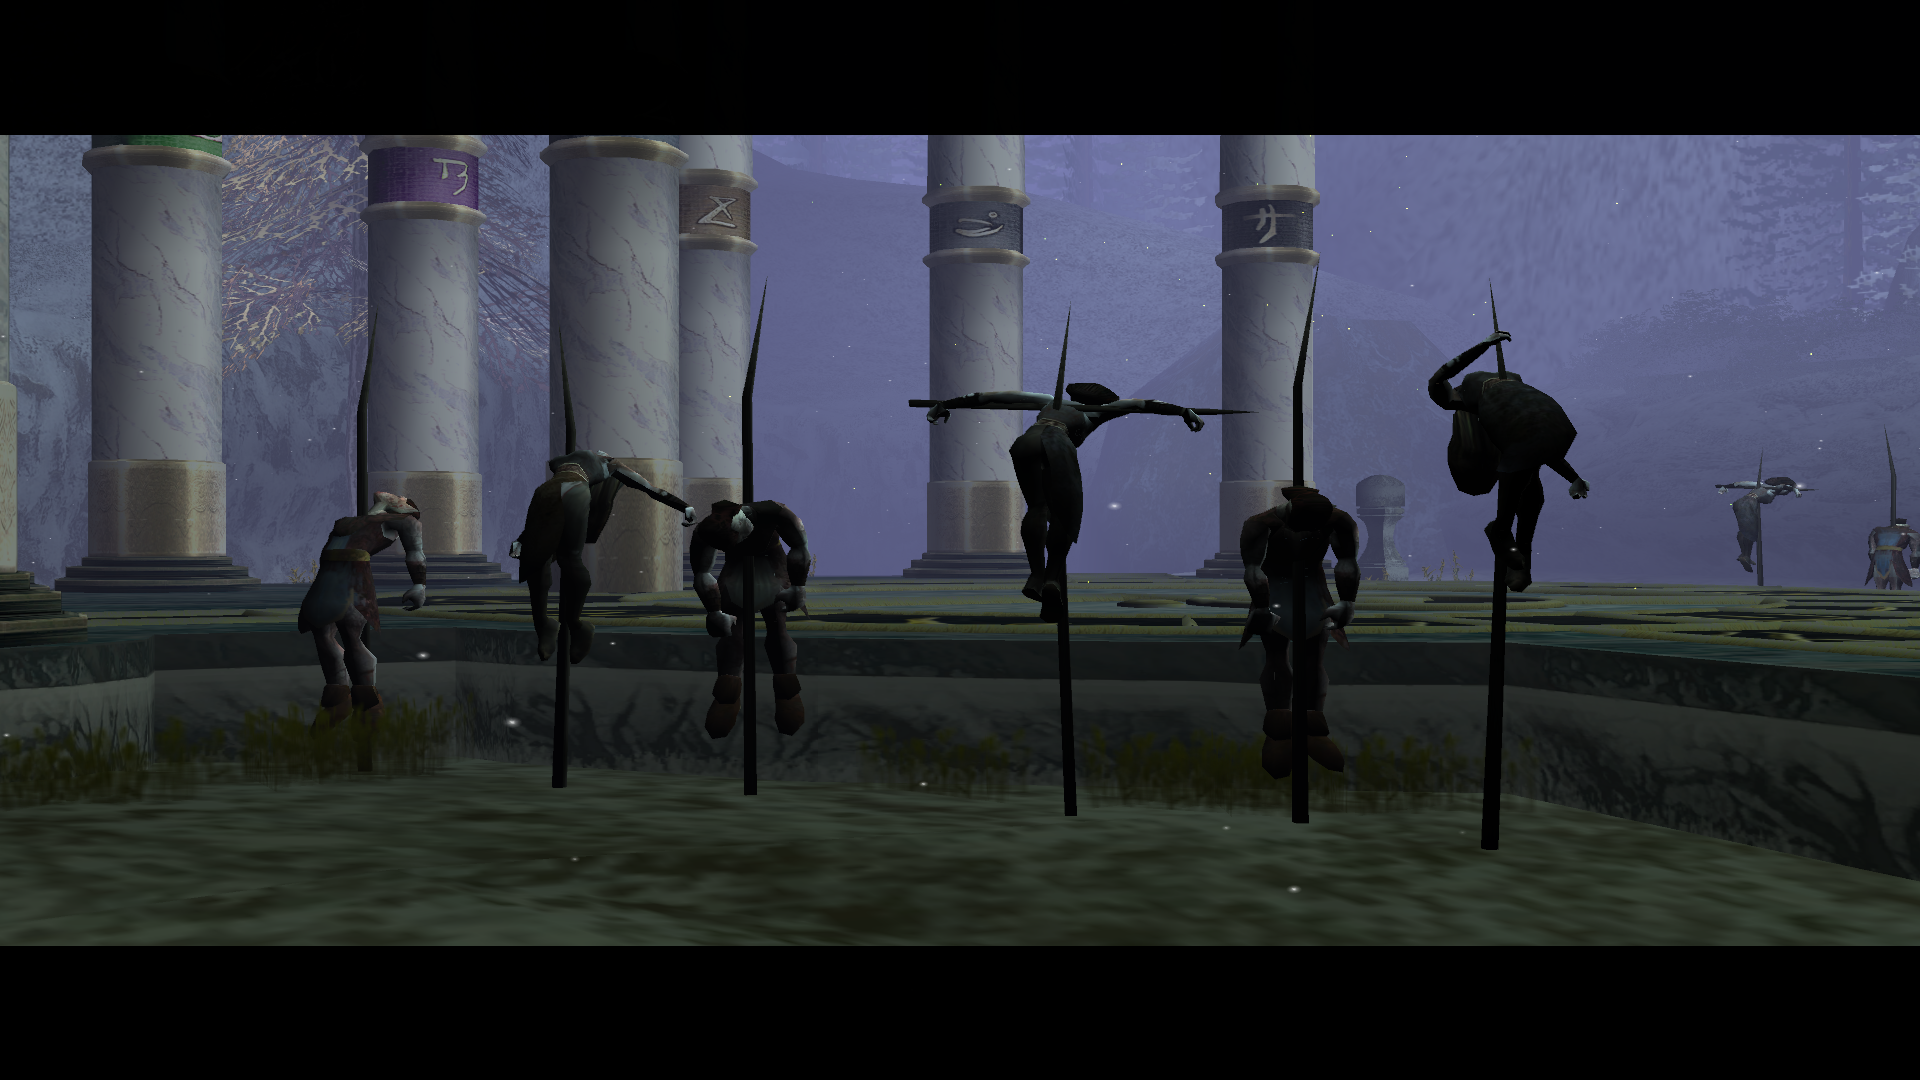 SR2--EraC-Cutscene-KillingFields-Alternate-Pillars-04.png